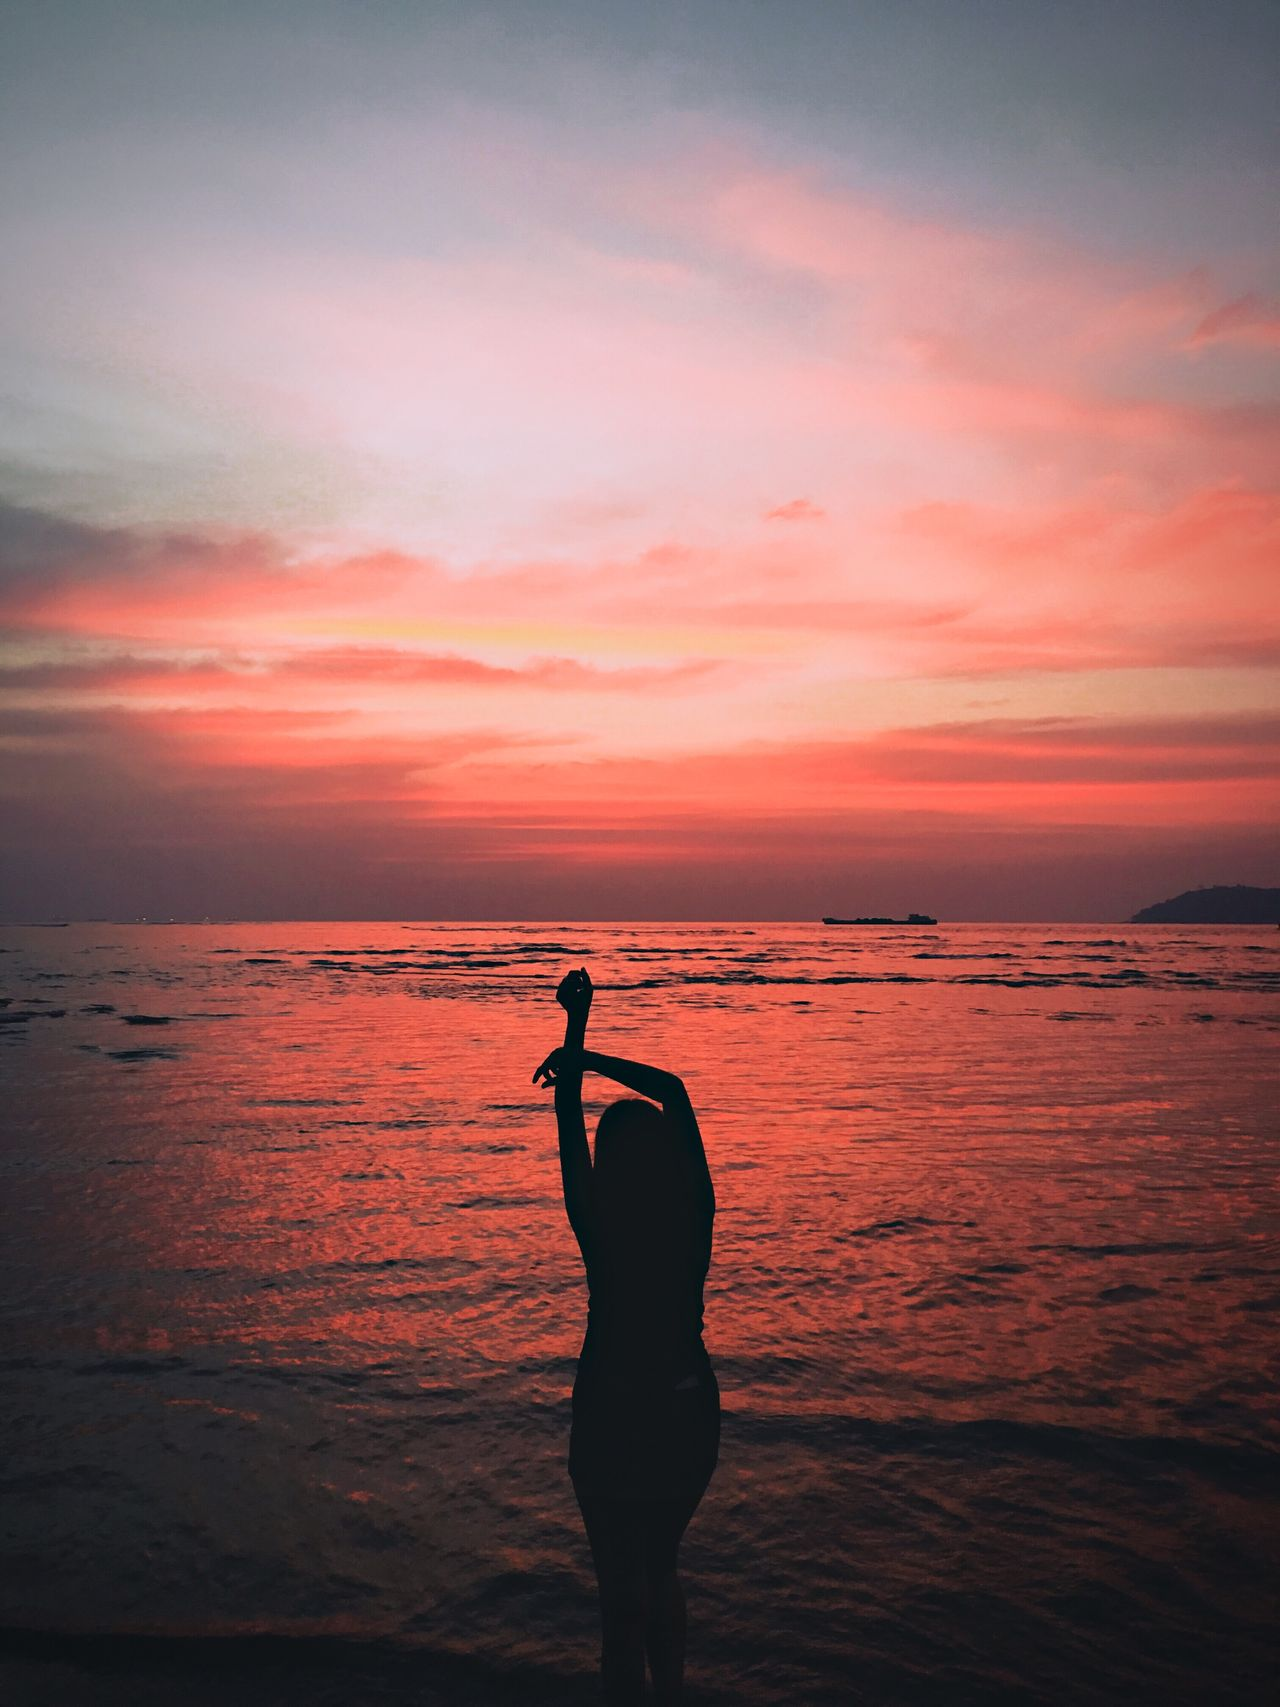 A perfect sunset In Goa. Sunset Sea Beach Sky Beauty In Nature Horizon Over Water Water One Person Silhouette Nature EyeEm Eyeem Market EyeEmBestPics Goa Sunset Silhouettes Sunsetporn Sunsets Sunset And Clouds  Model Beachphotography Silhouette Real People Orange Color Standing Sunset_collection